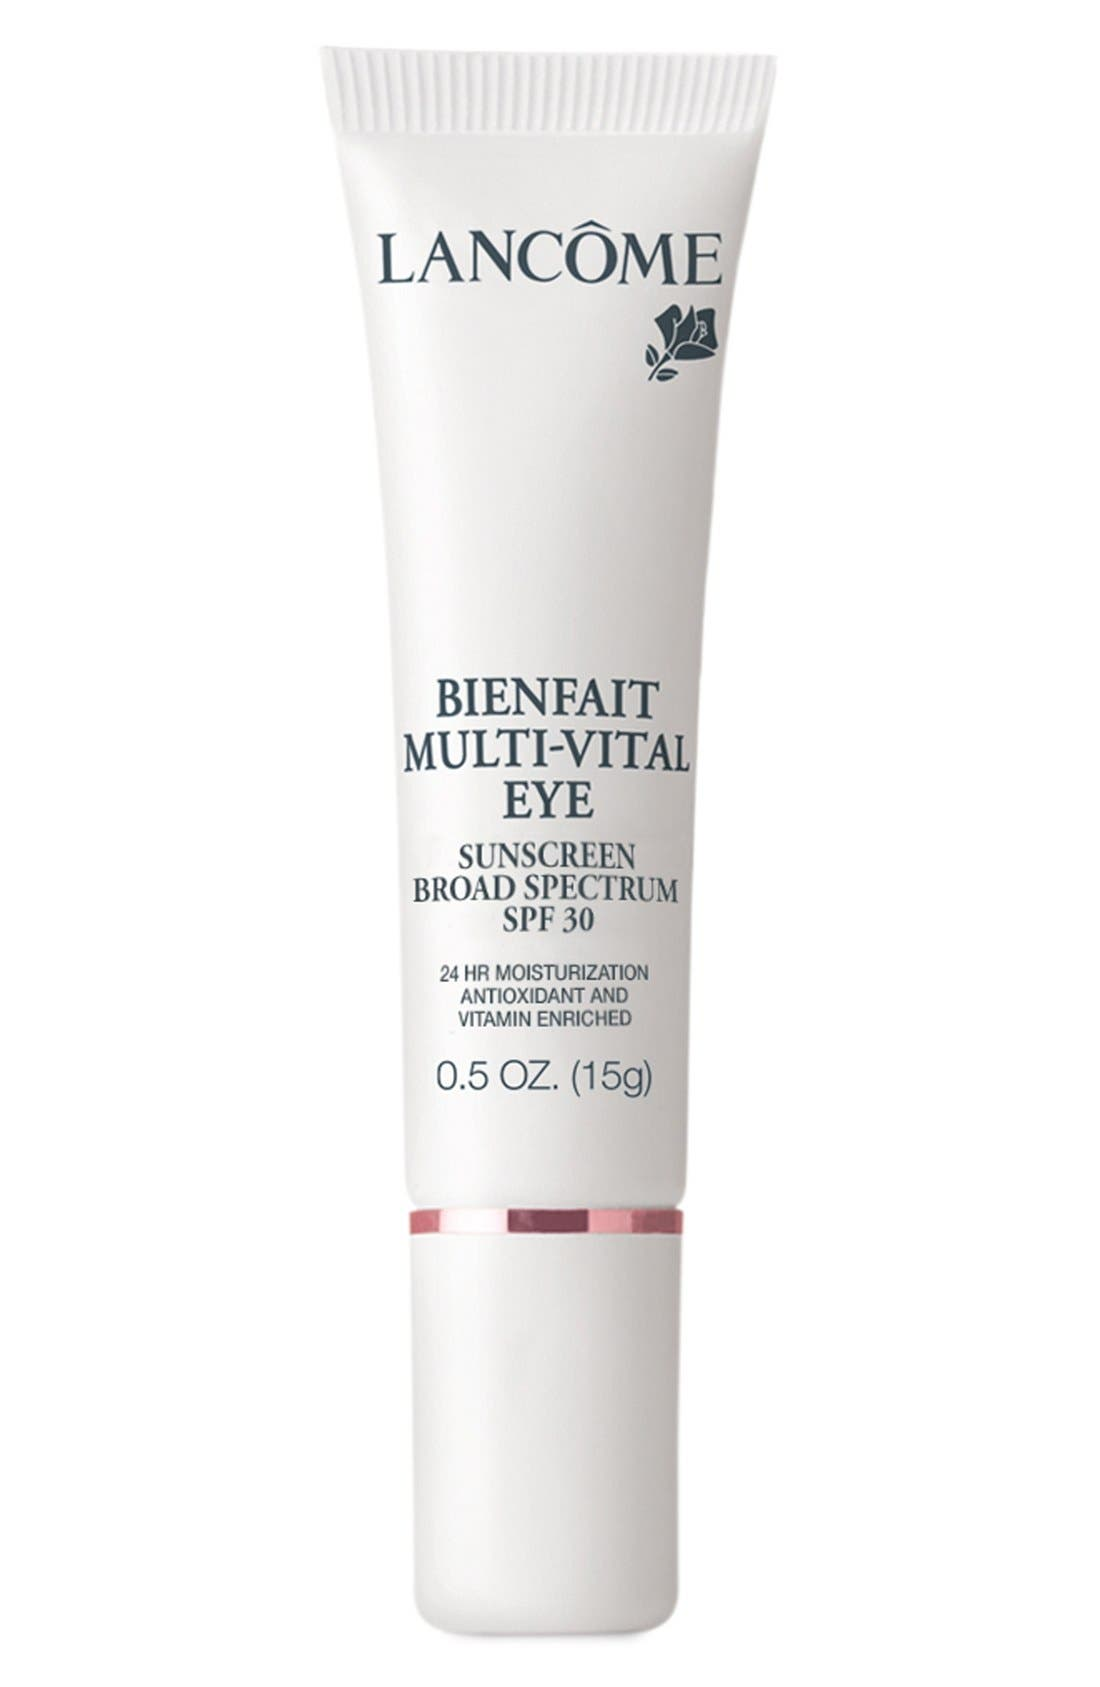 Lancôme Bienfait Multi-Vital Eye SPF 28 Sunscreen